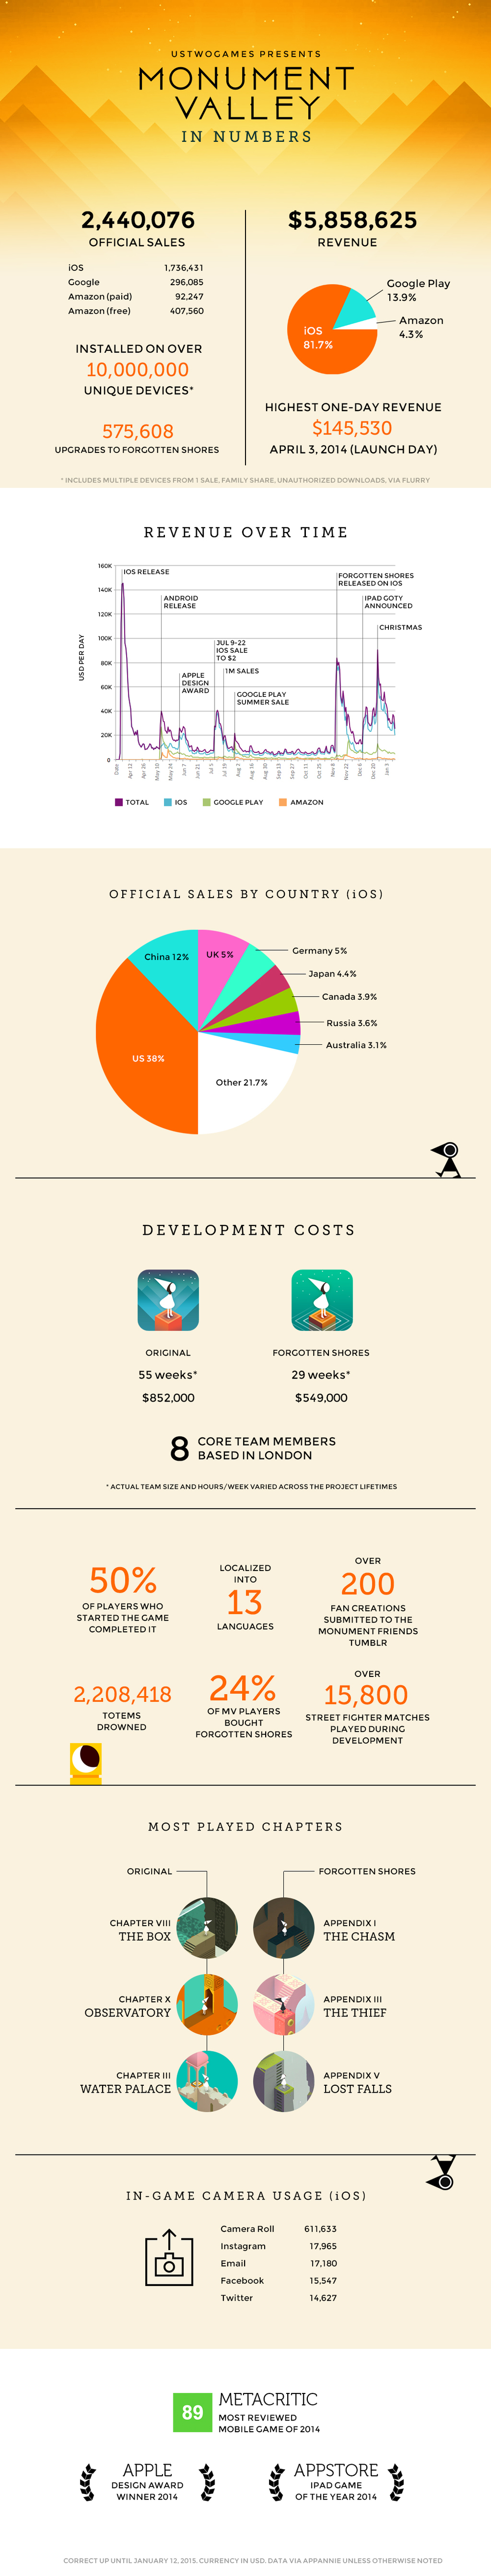 A look at the numbers behind Monument Valley